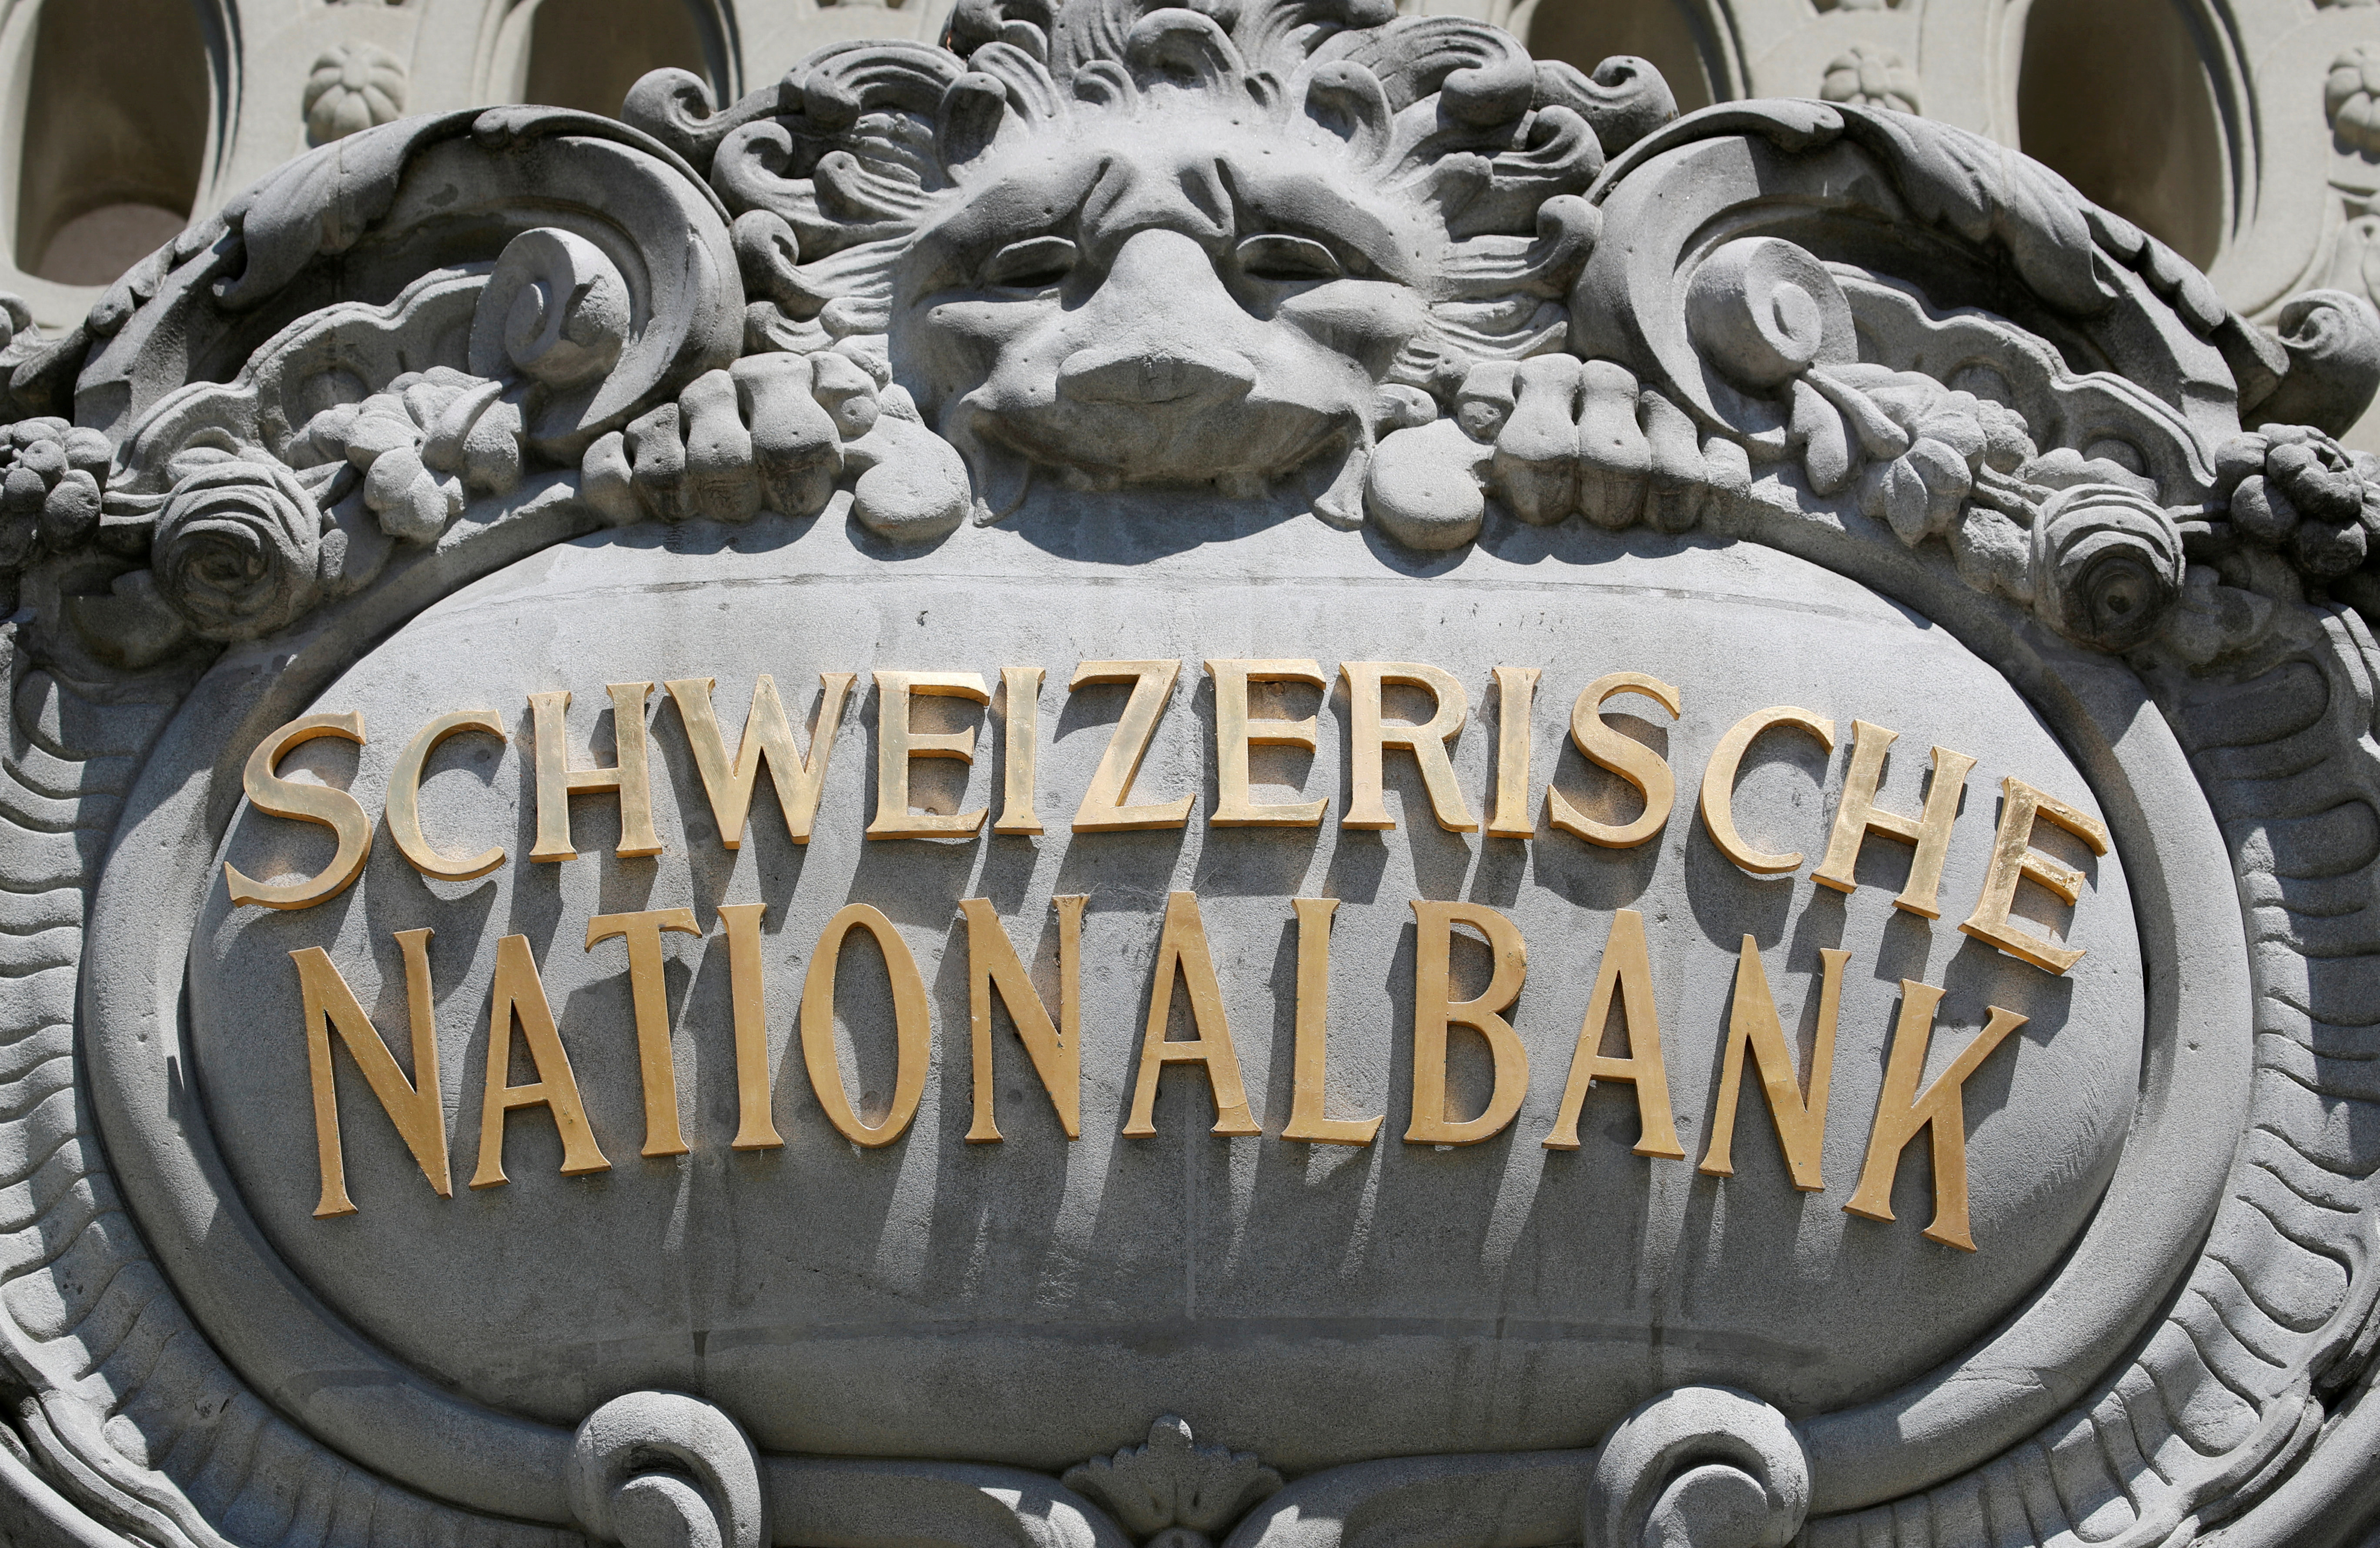 A Swiss National Bank logo is pictured on the SNB building in Bern, Switzerland May 20, 2020. Picture taken May 20, 2020. REUTERS/Arnd Wiegmann